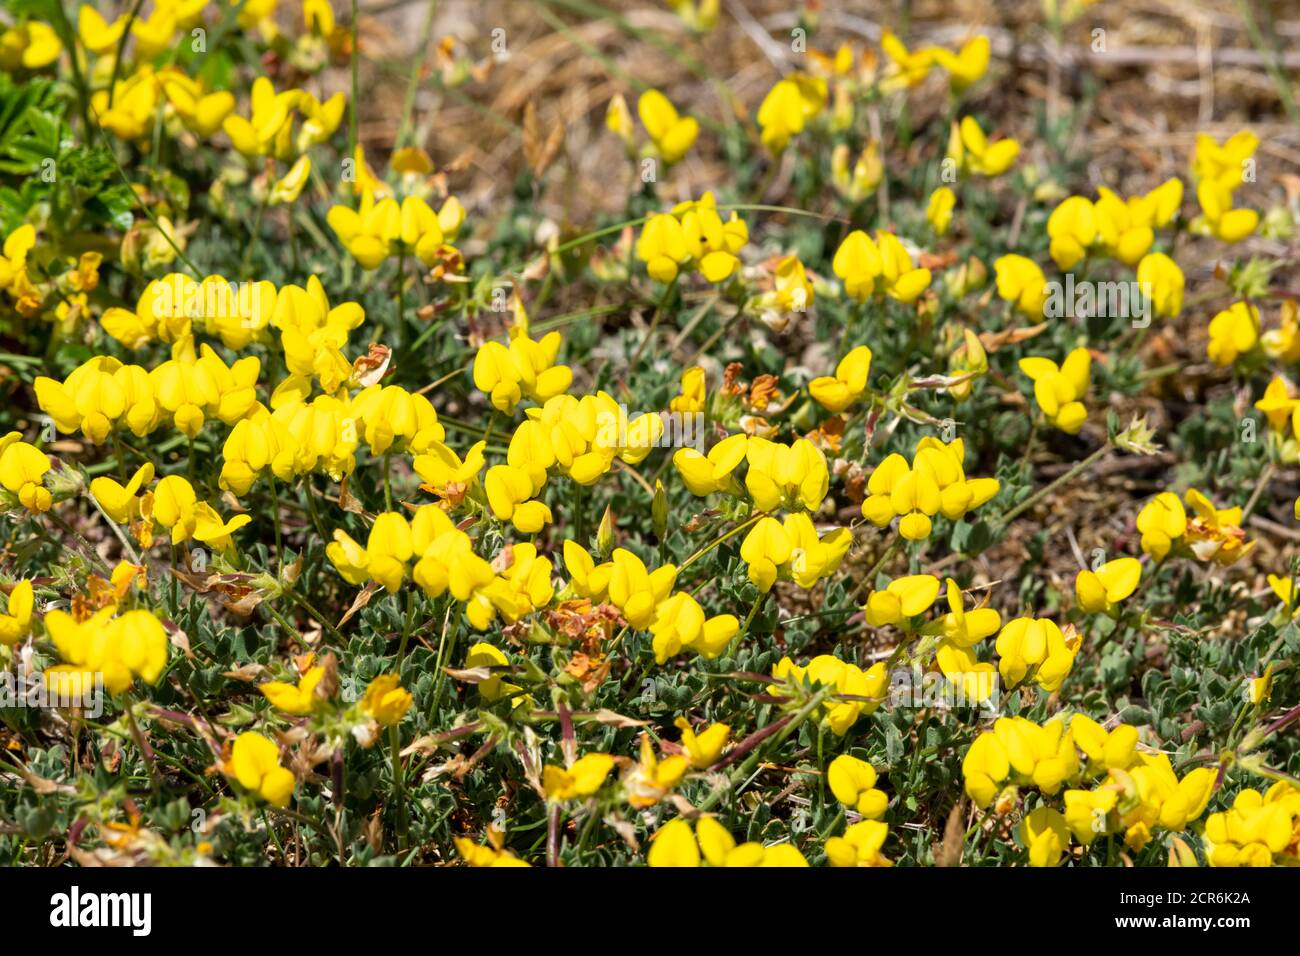 Germany, Lower Saxony, Juist, gorse (Genista) subfamily of the butterflies (Faboideae). Stock Photo